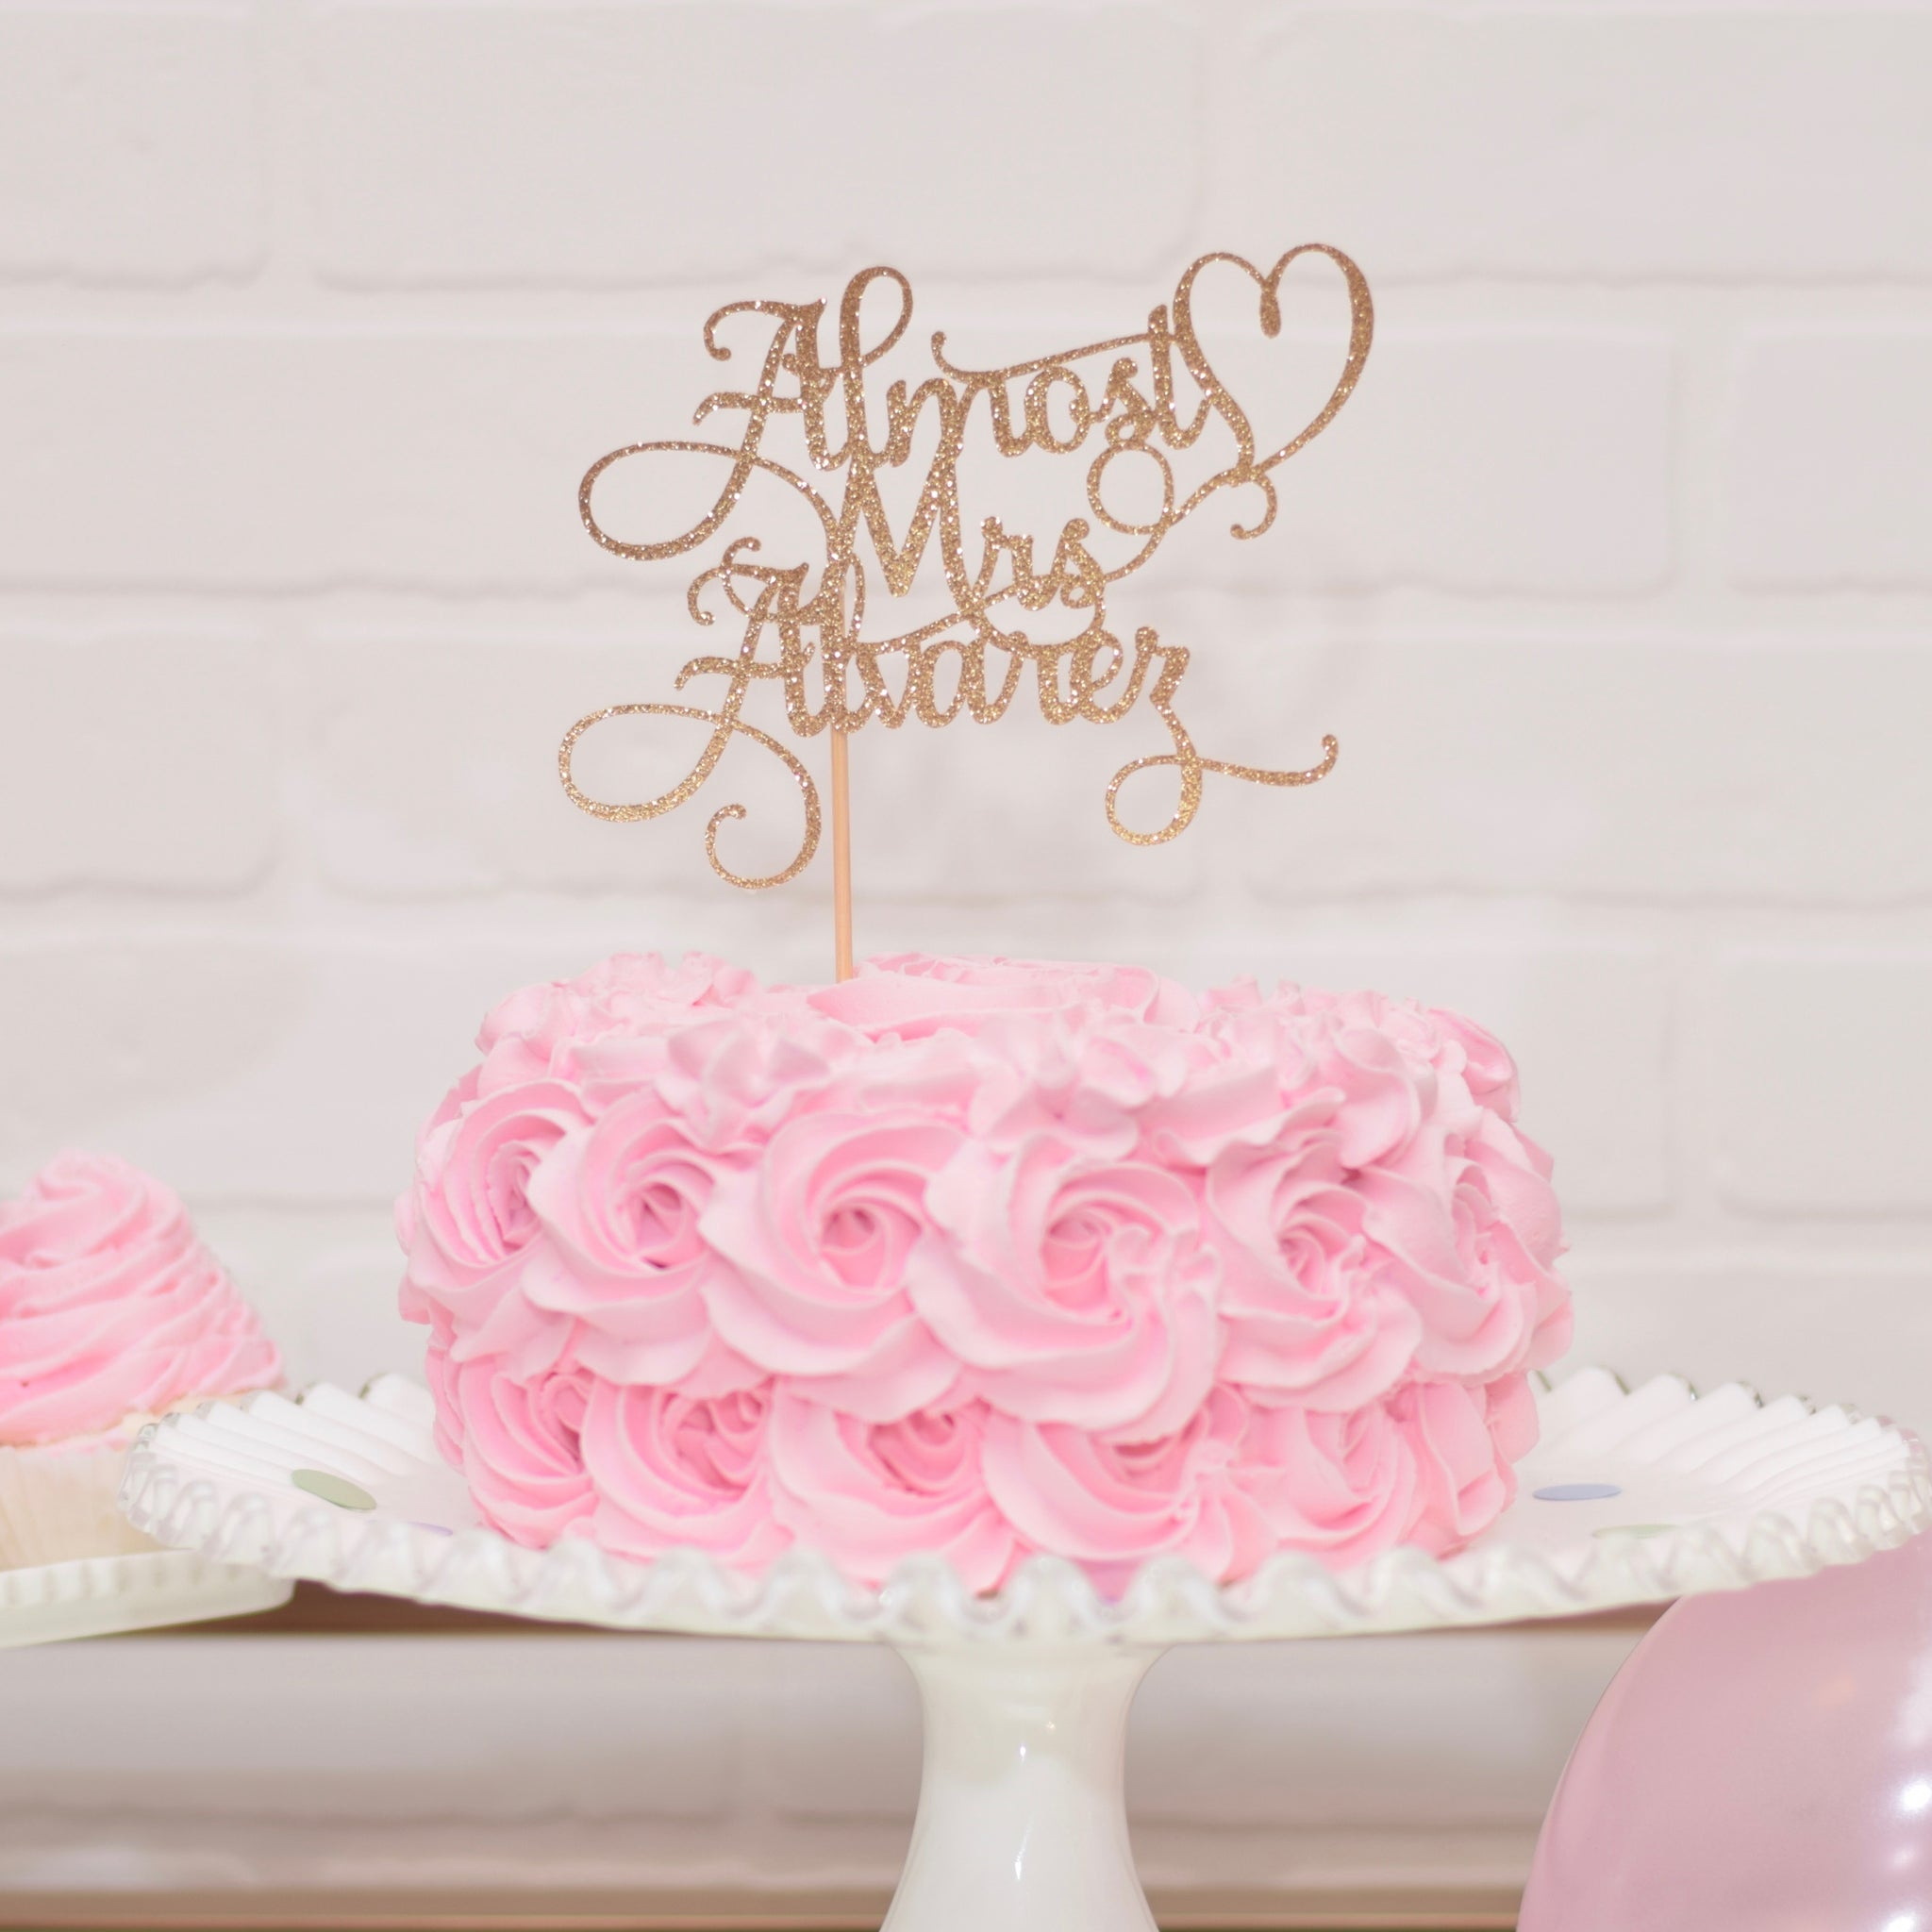 Almost Mrs Personalized Bridal Shower Cake Topper - Sugar Crush Co.